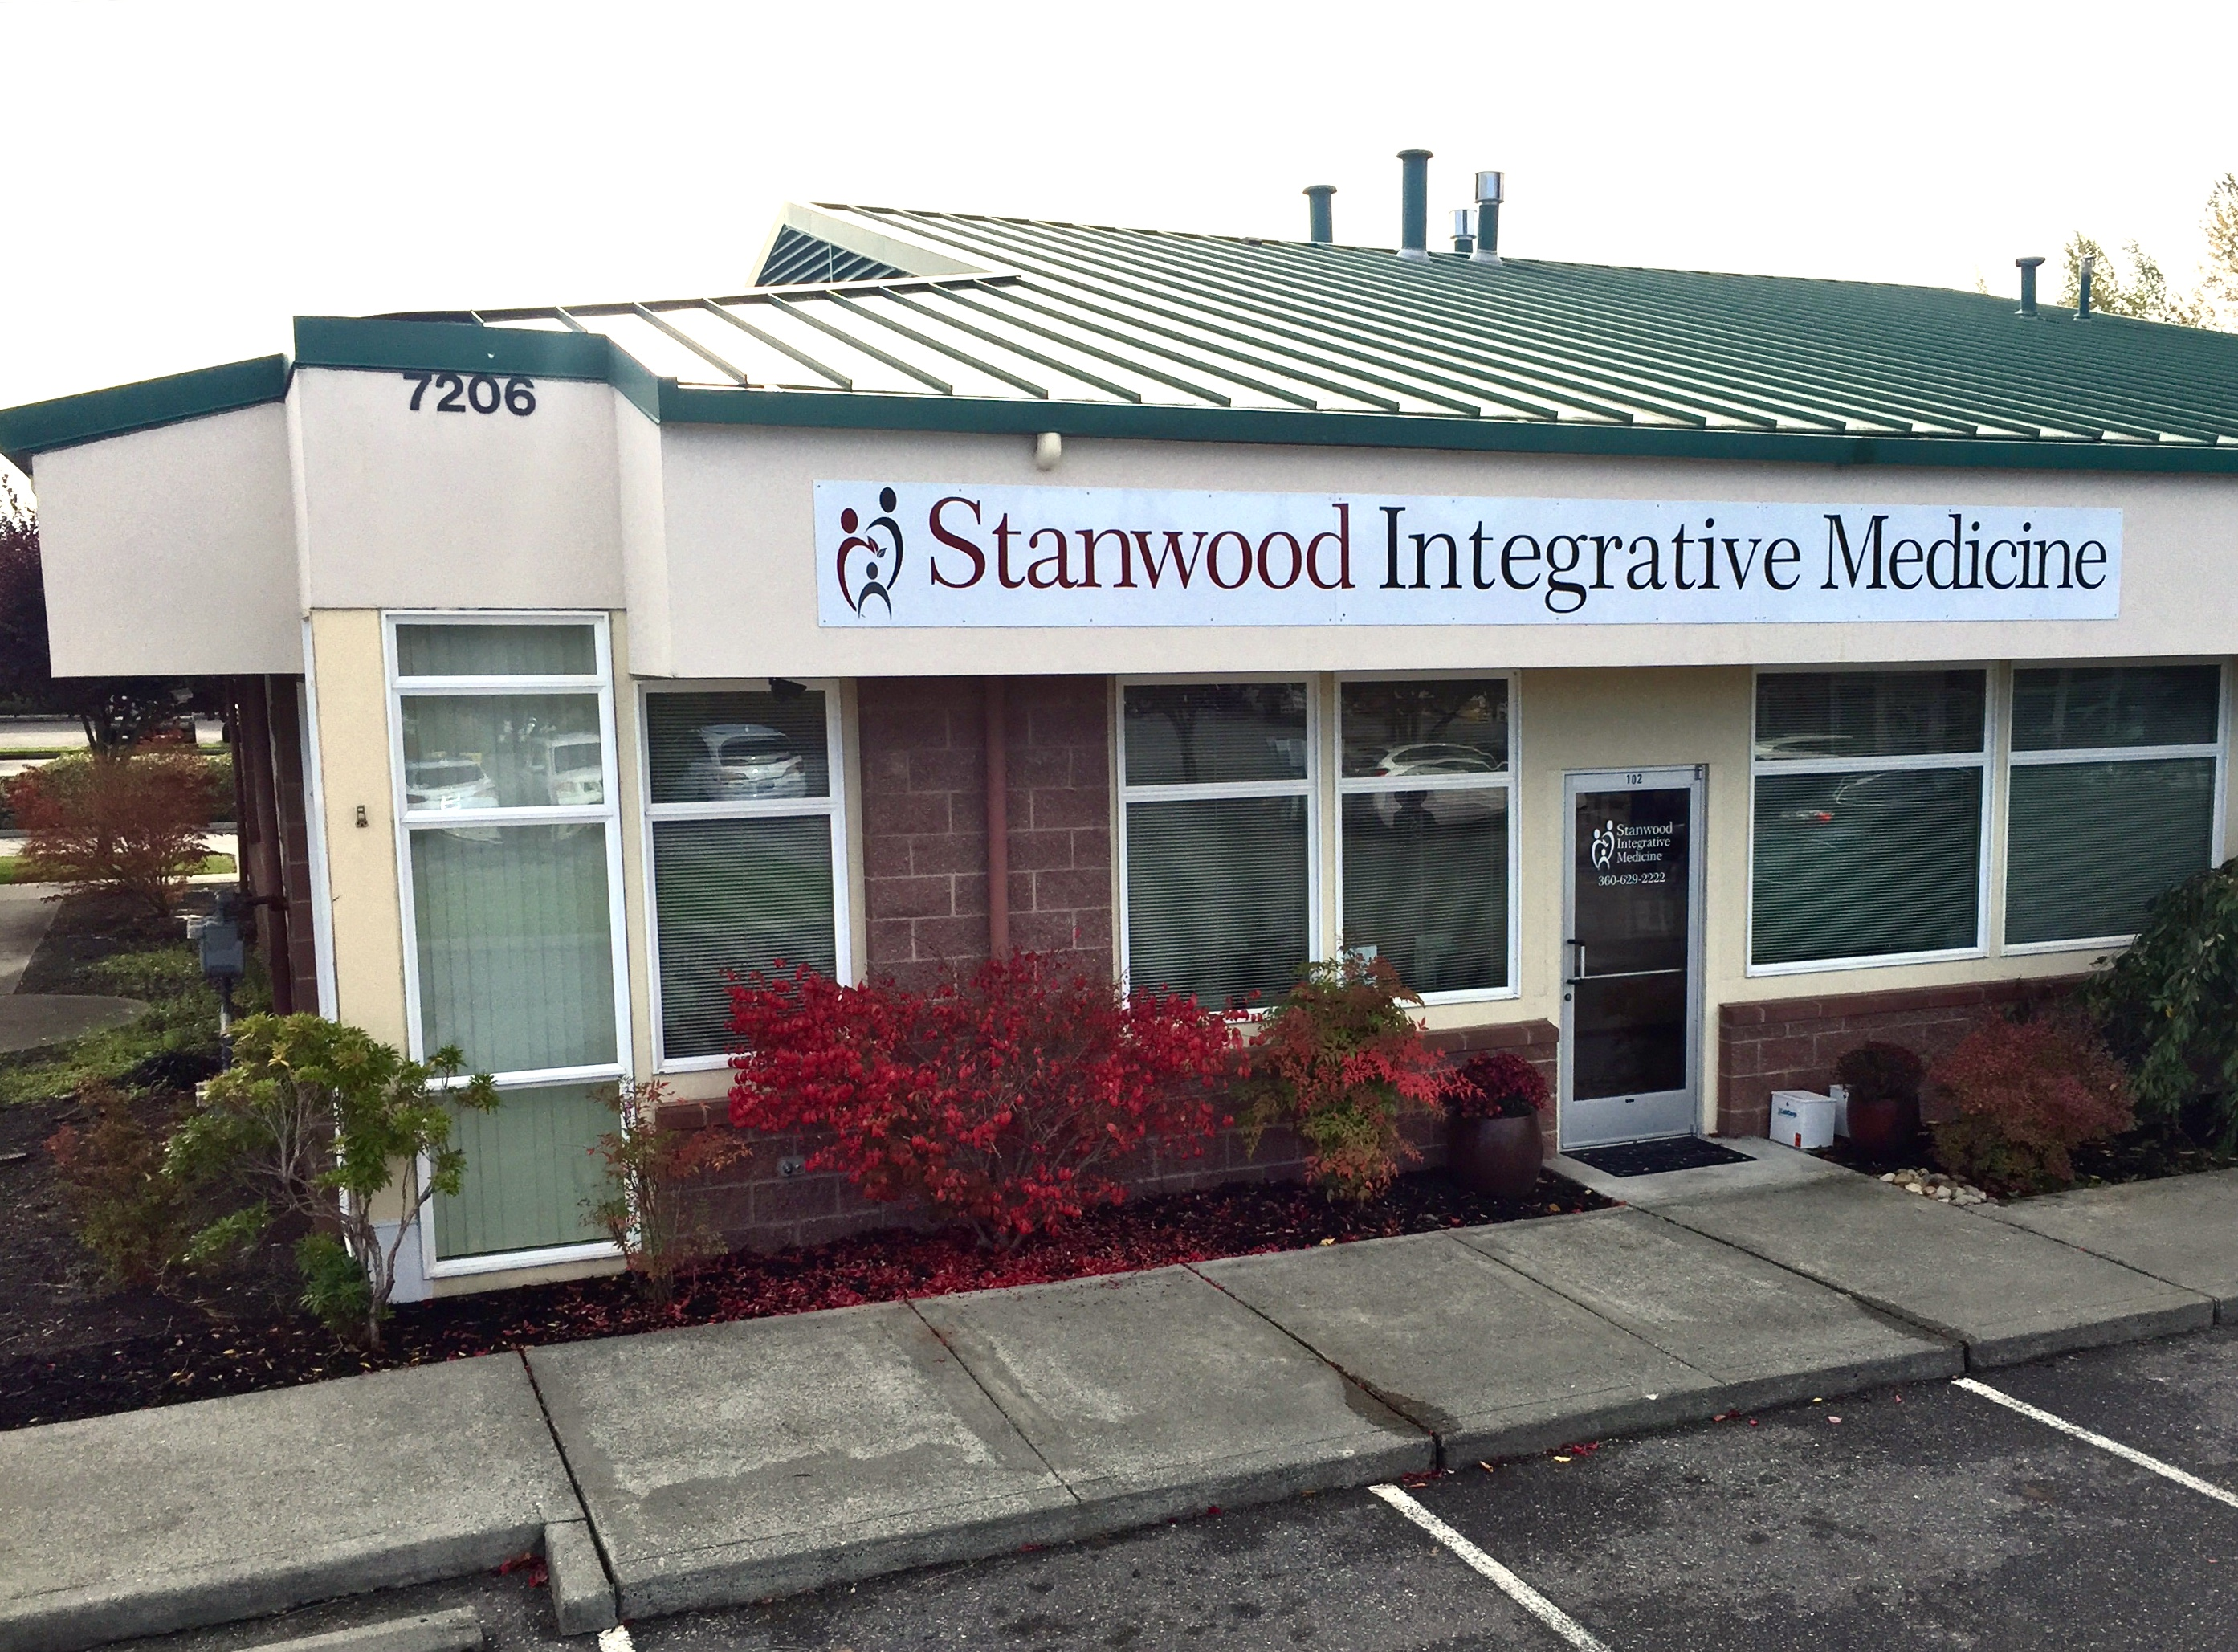 Stanwood Integrative Medicine Front Entrance